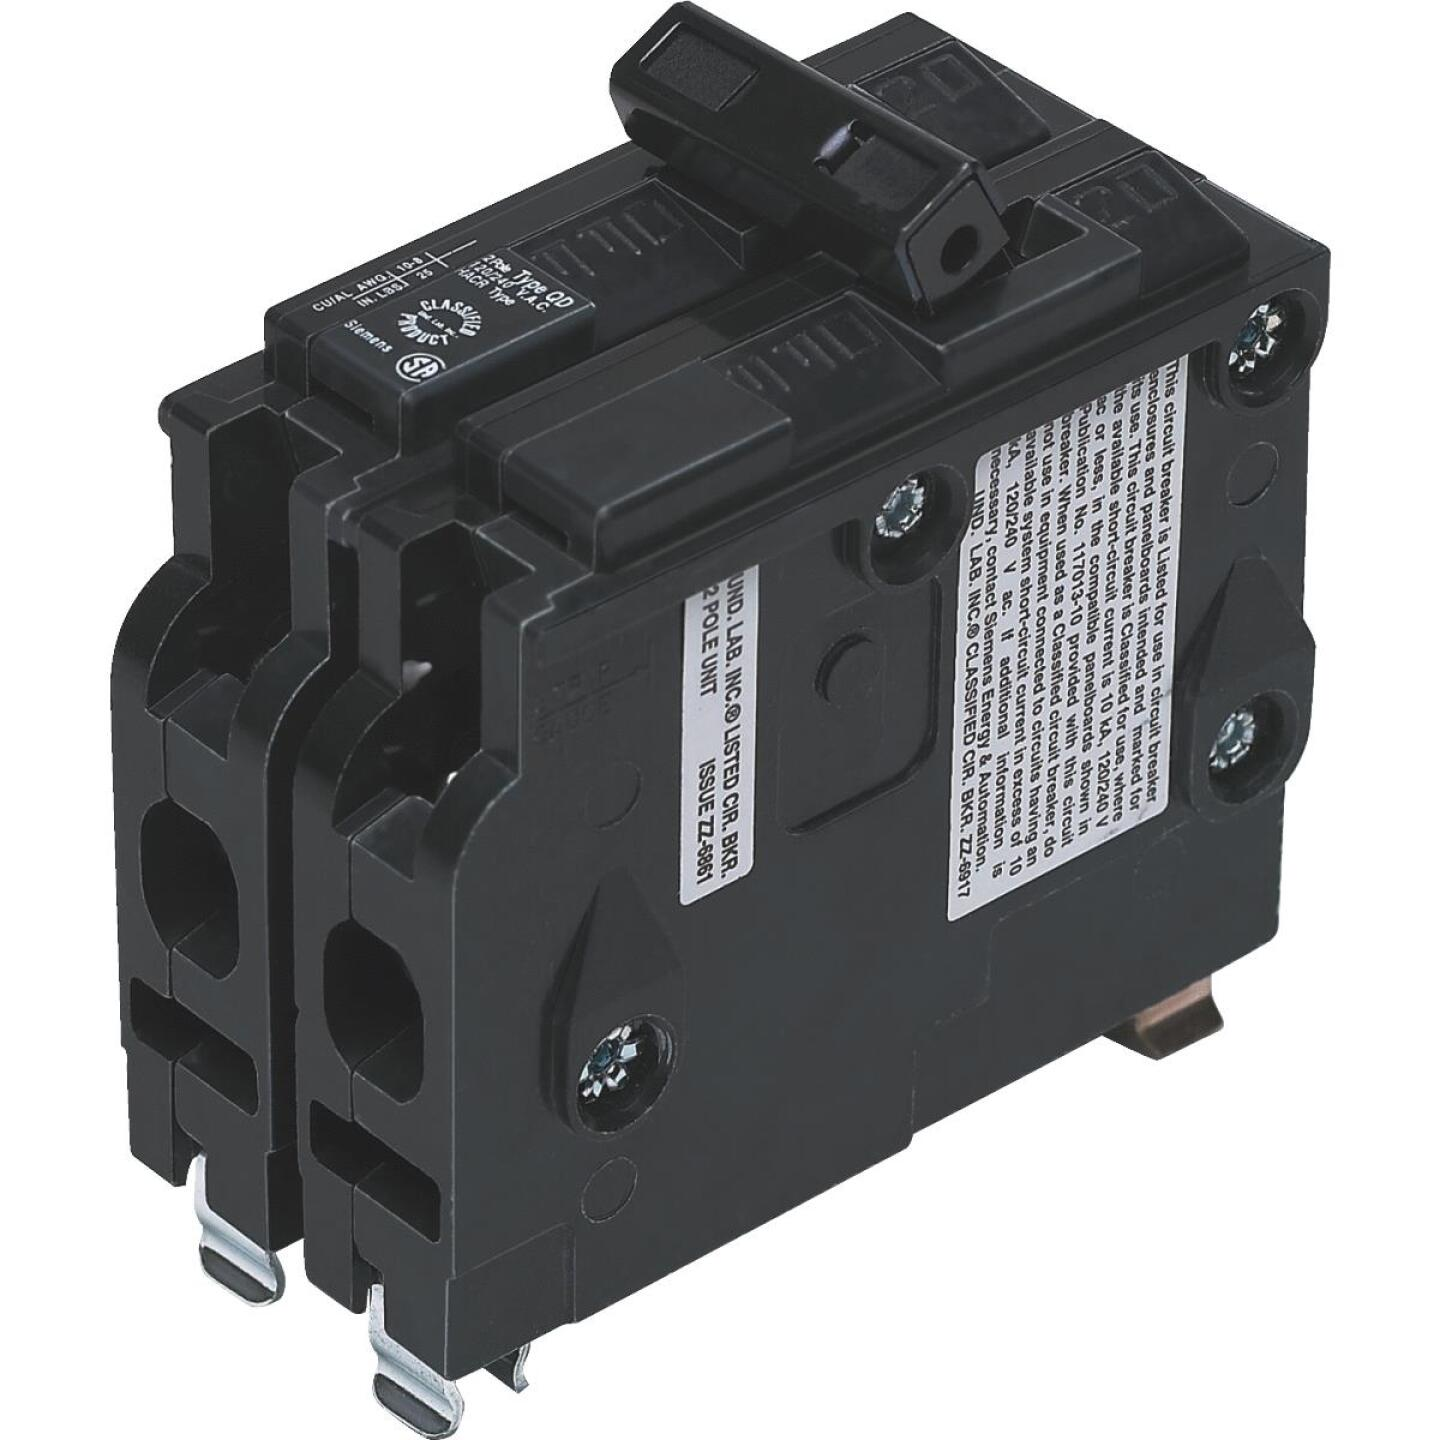 Connecticut Electric 50A Double-Pole Standard Trip Packaged Replacement Circuit Breaker For Square D Image 1